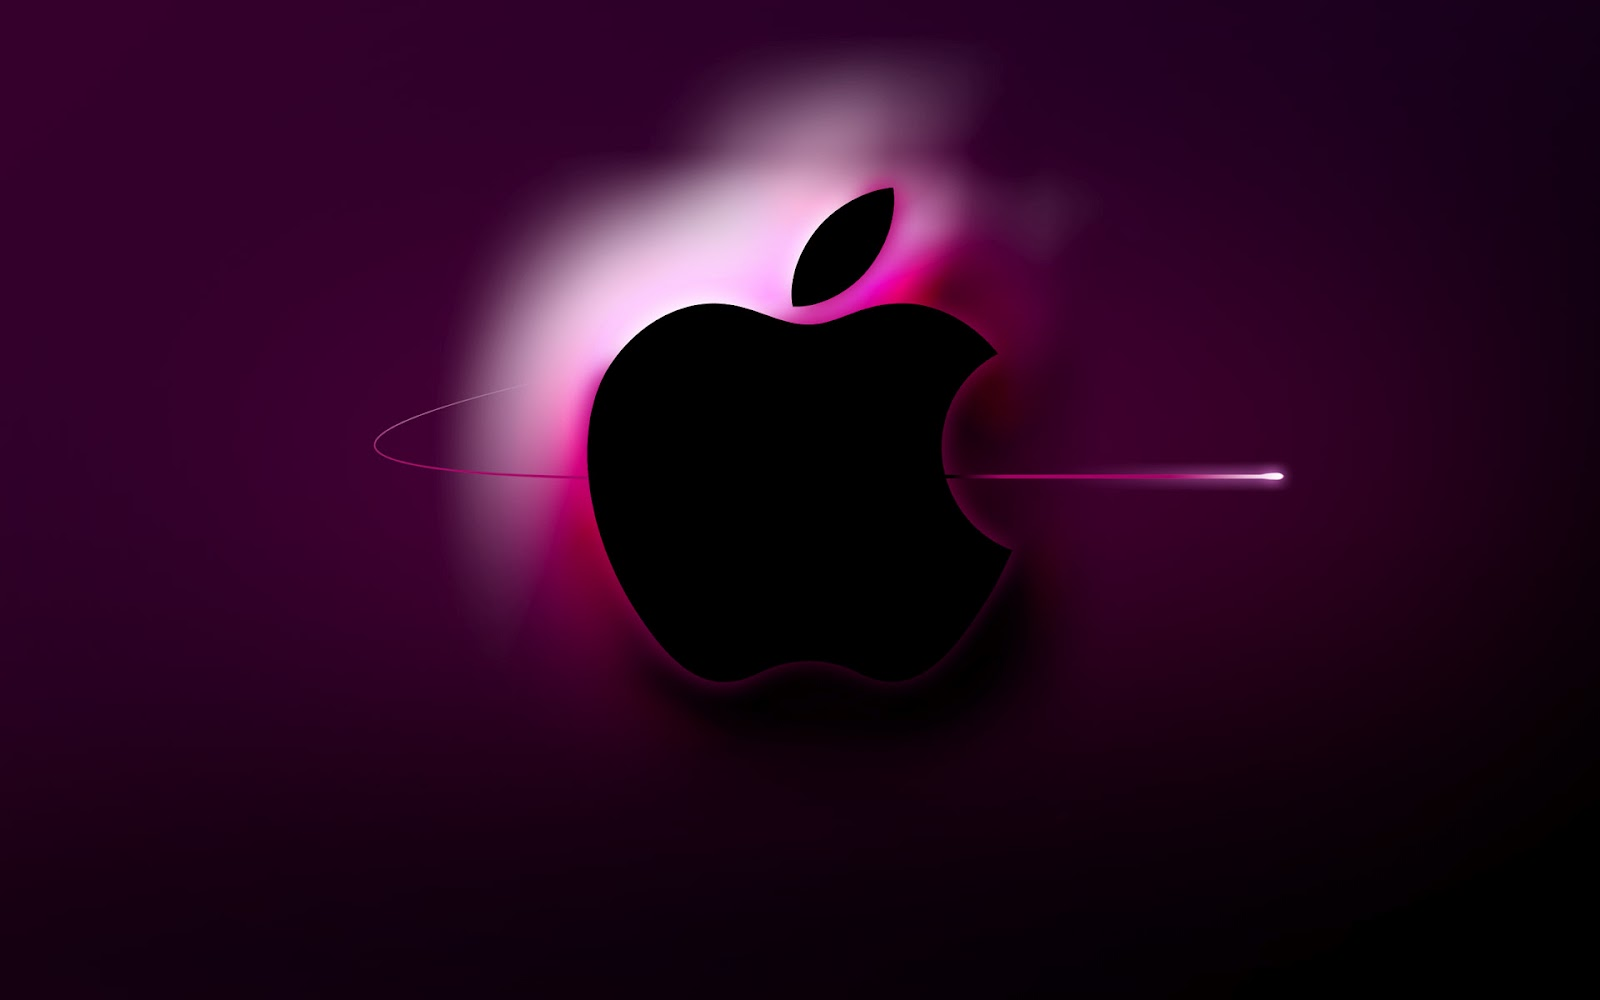 apple iphone wallpapers - wallpapersafari